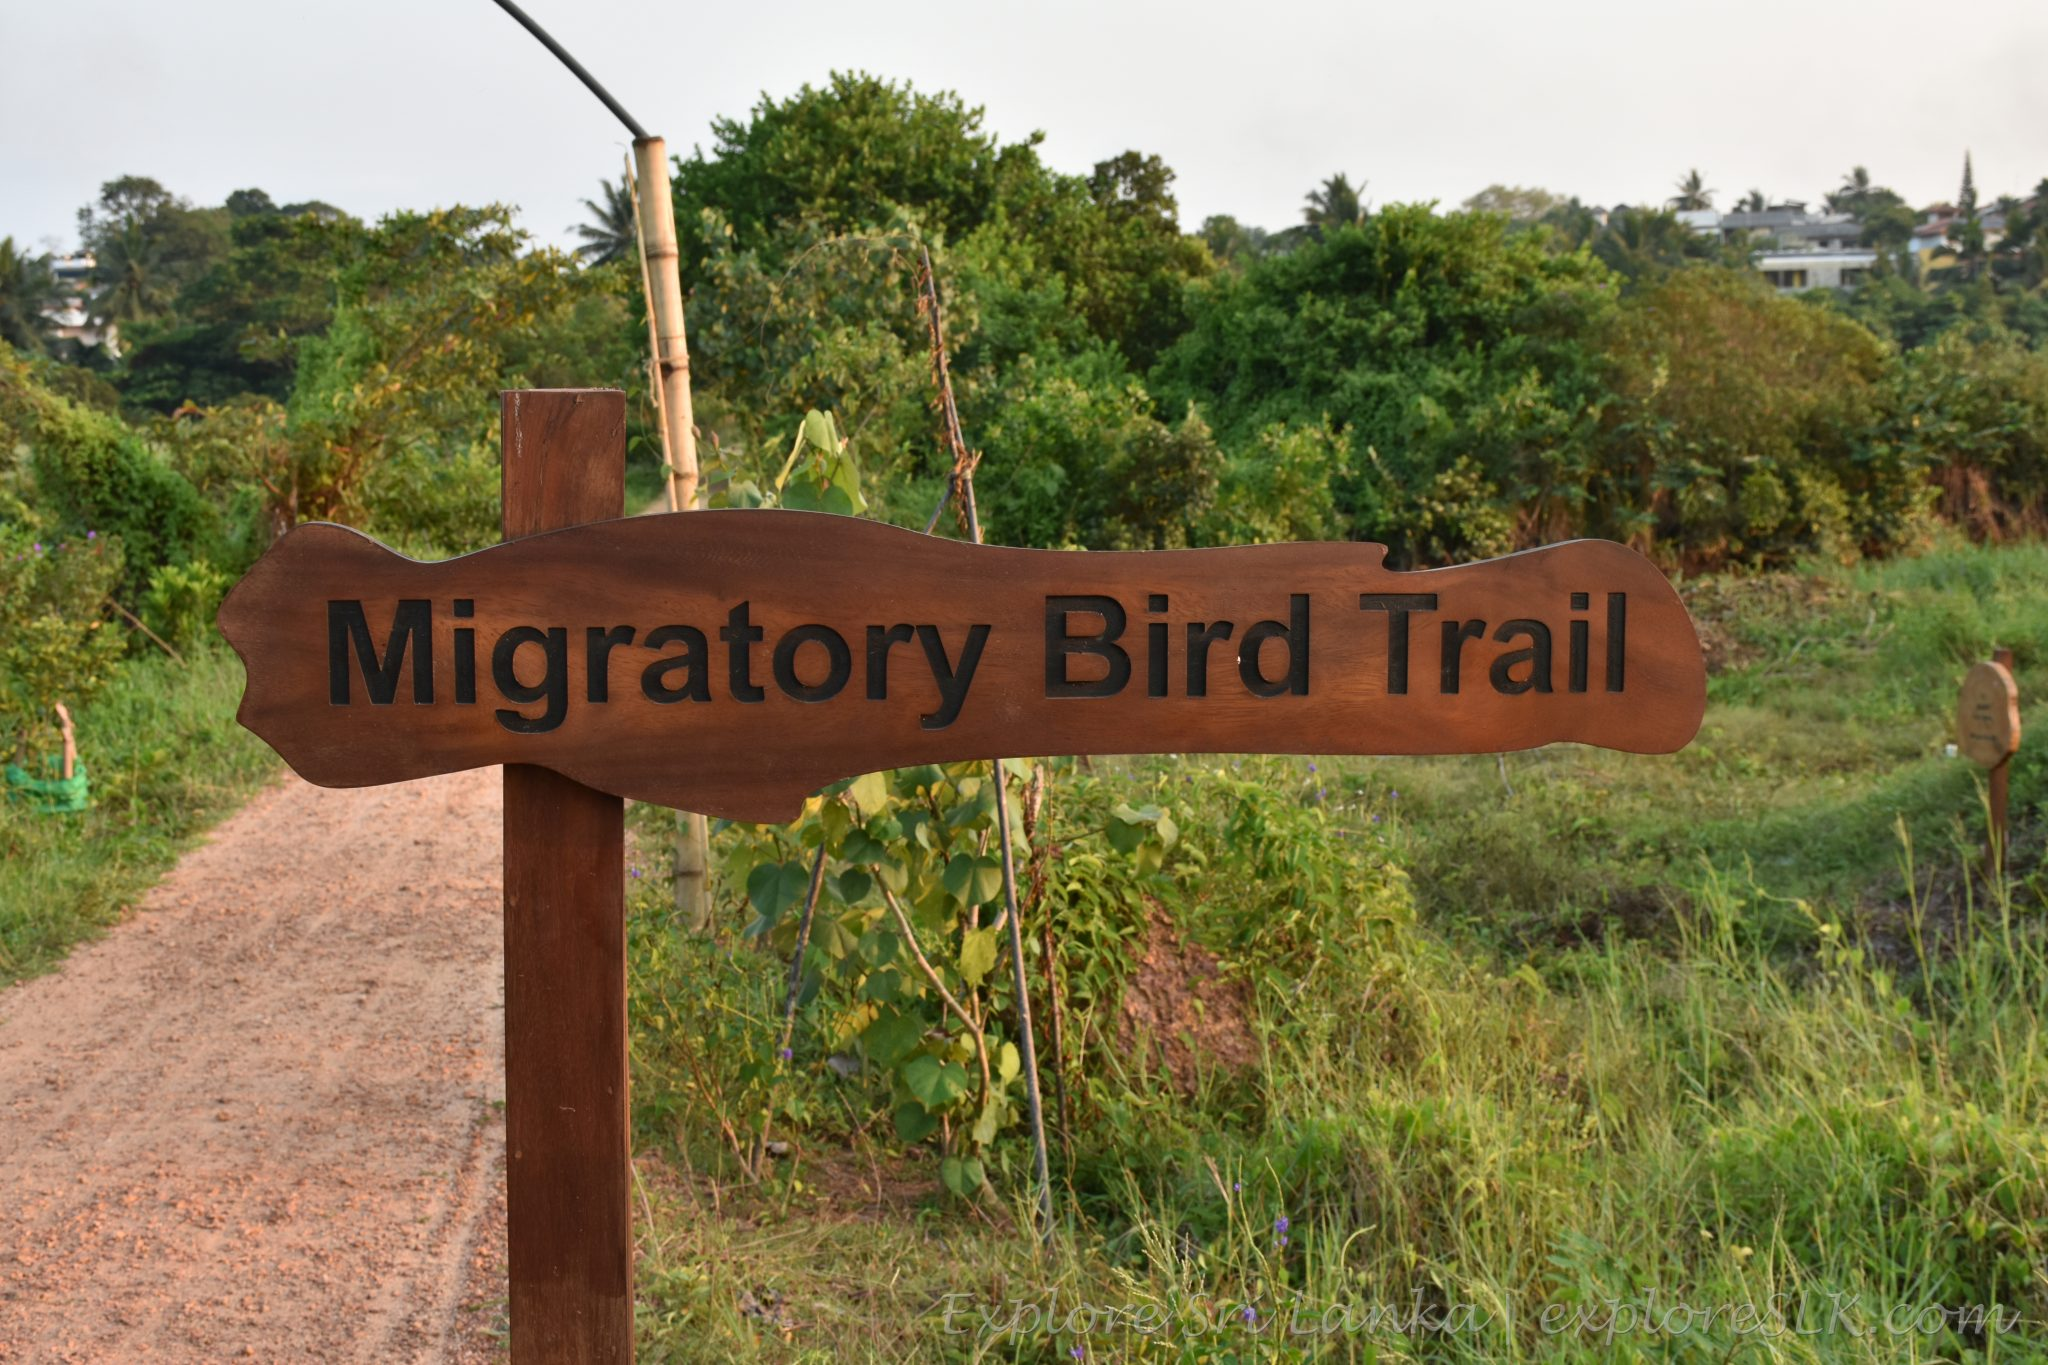 Migratory birds trail - sign board